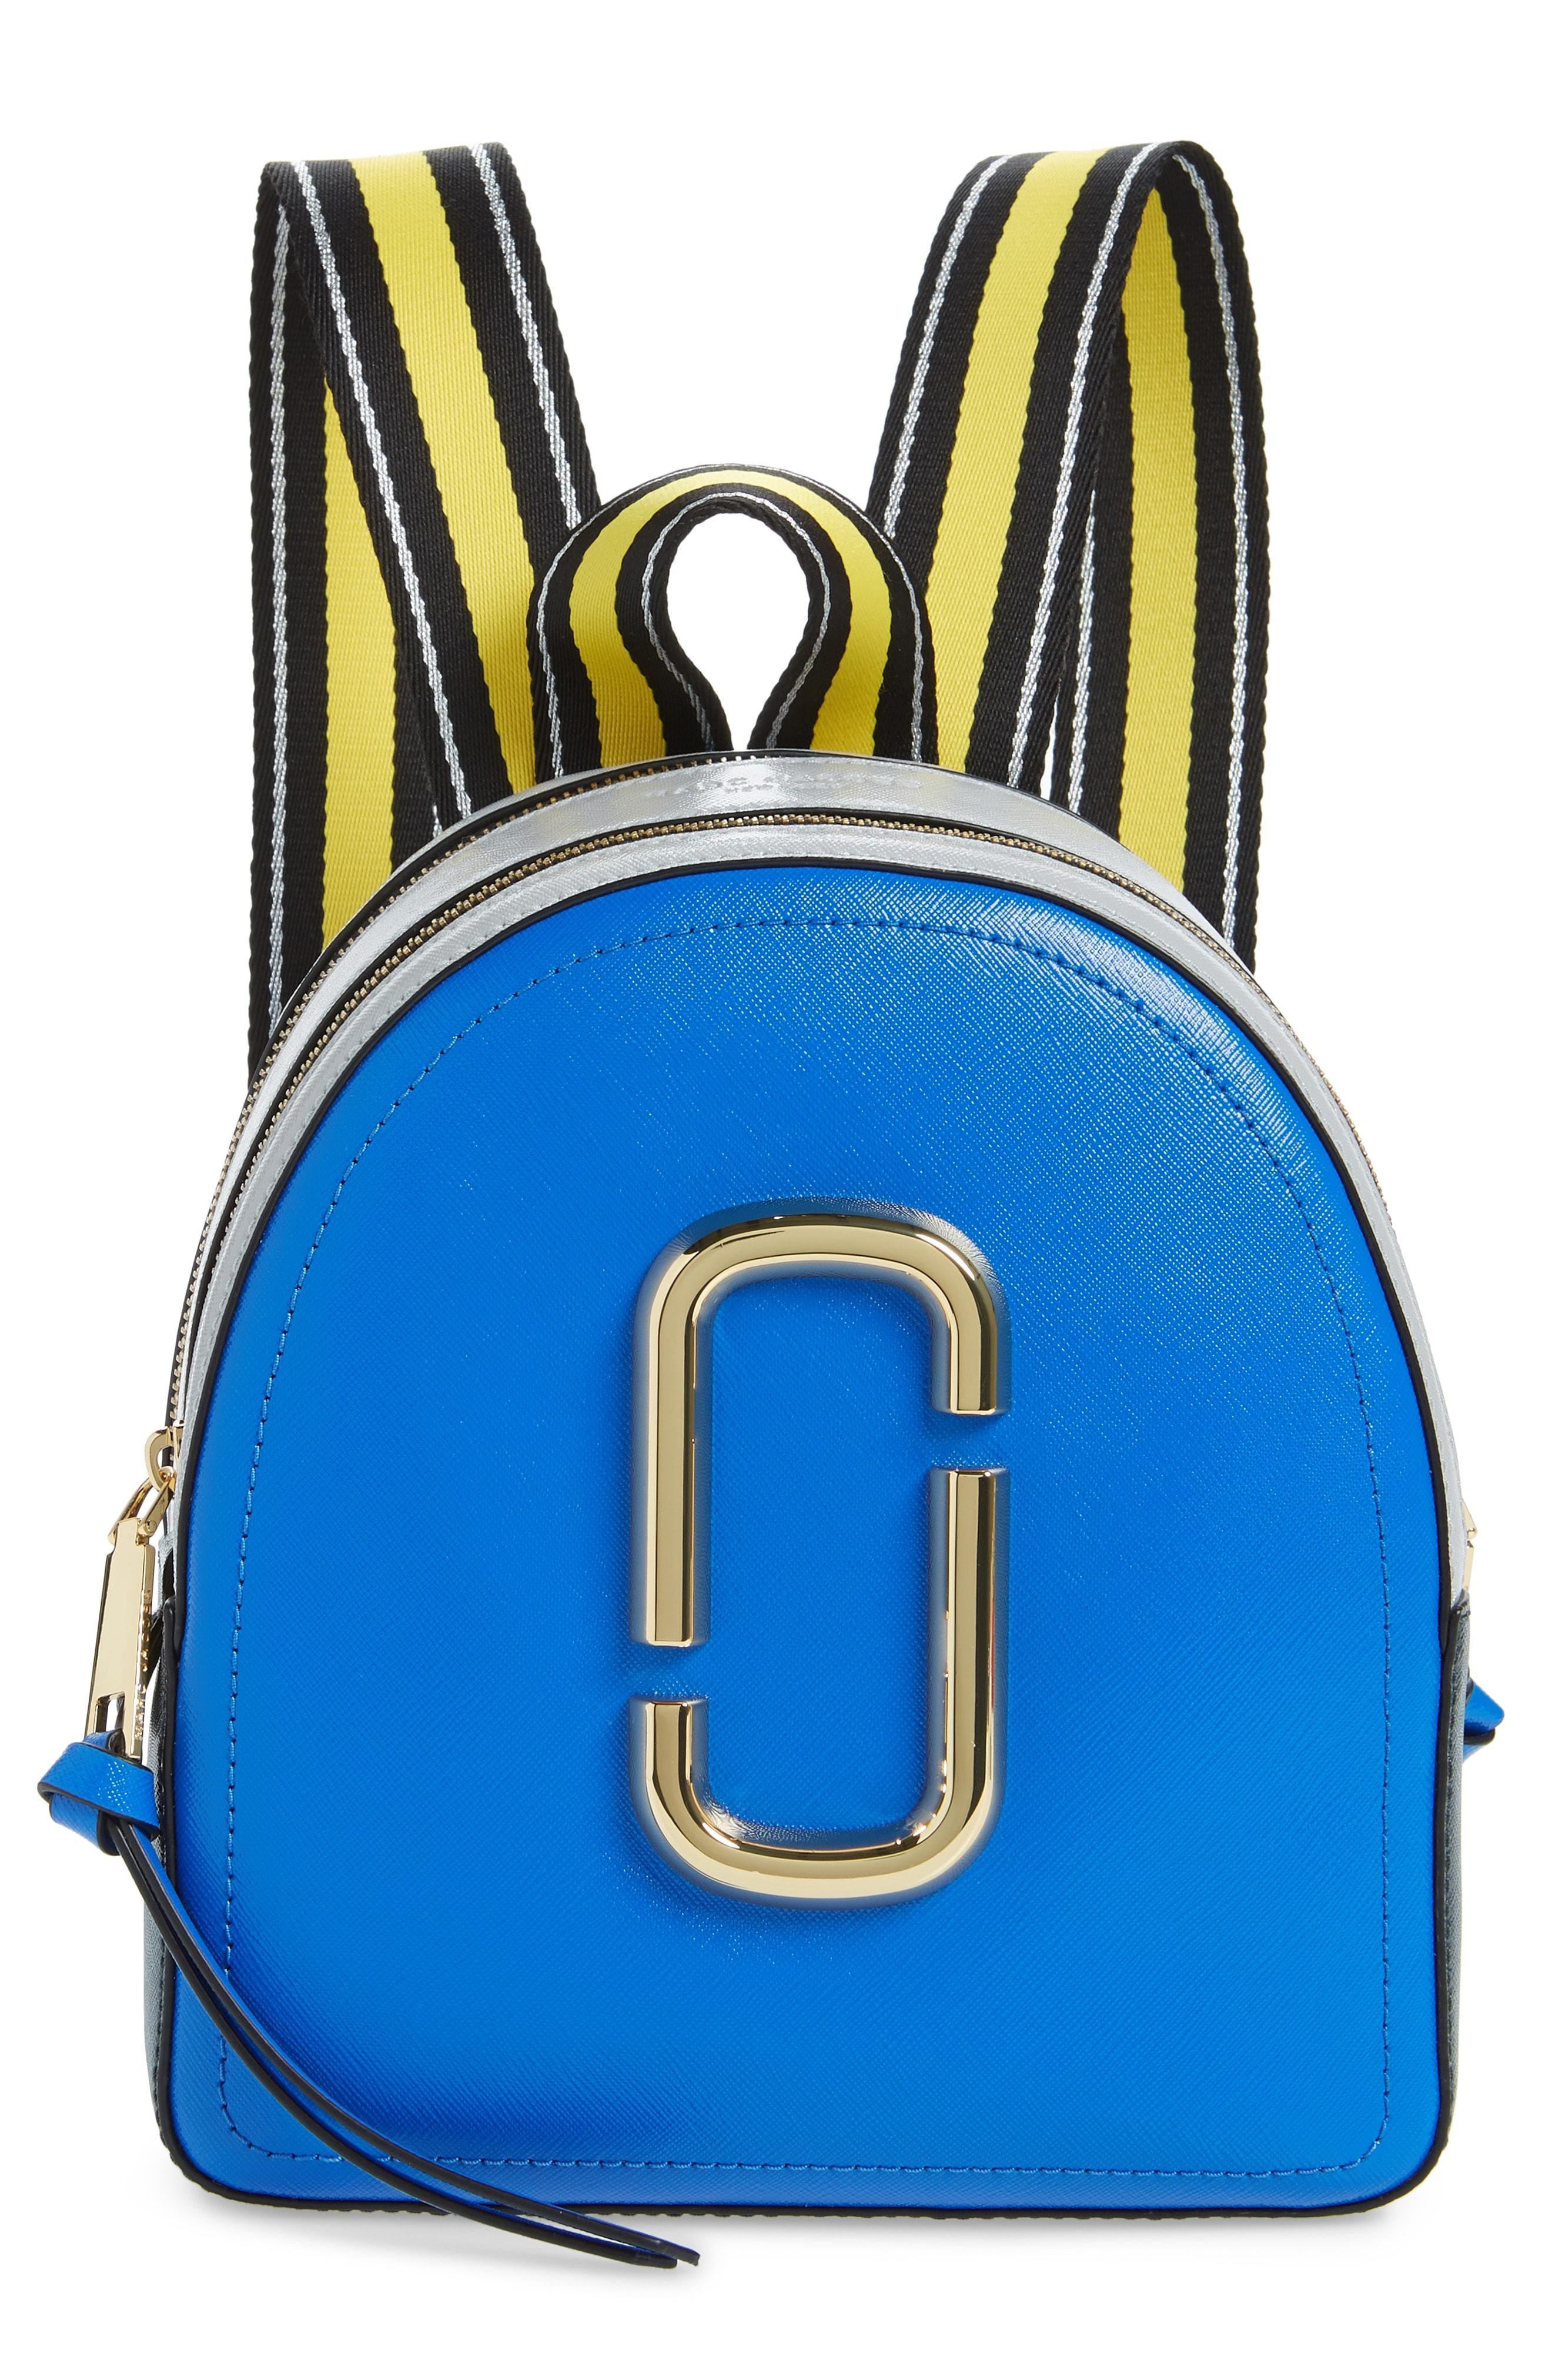 8440aba28acb Lyst - Marc Jacobs Pack Shot Leather Backpack in Blue